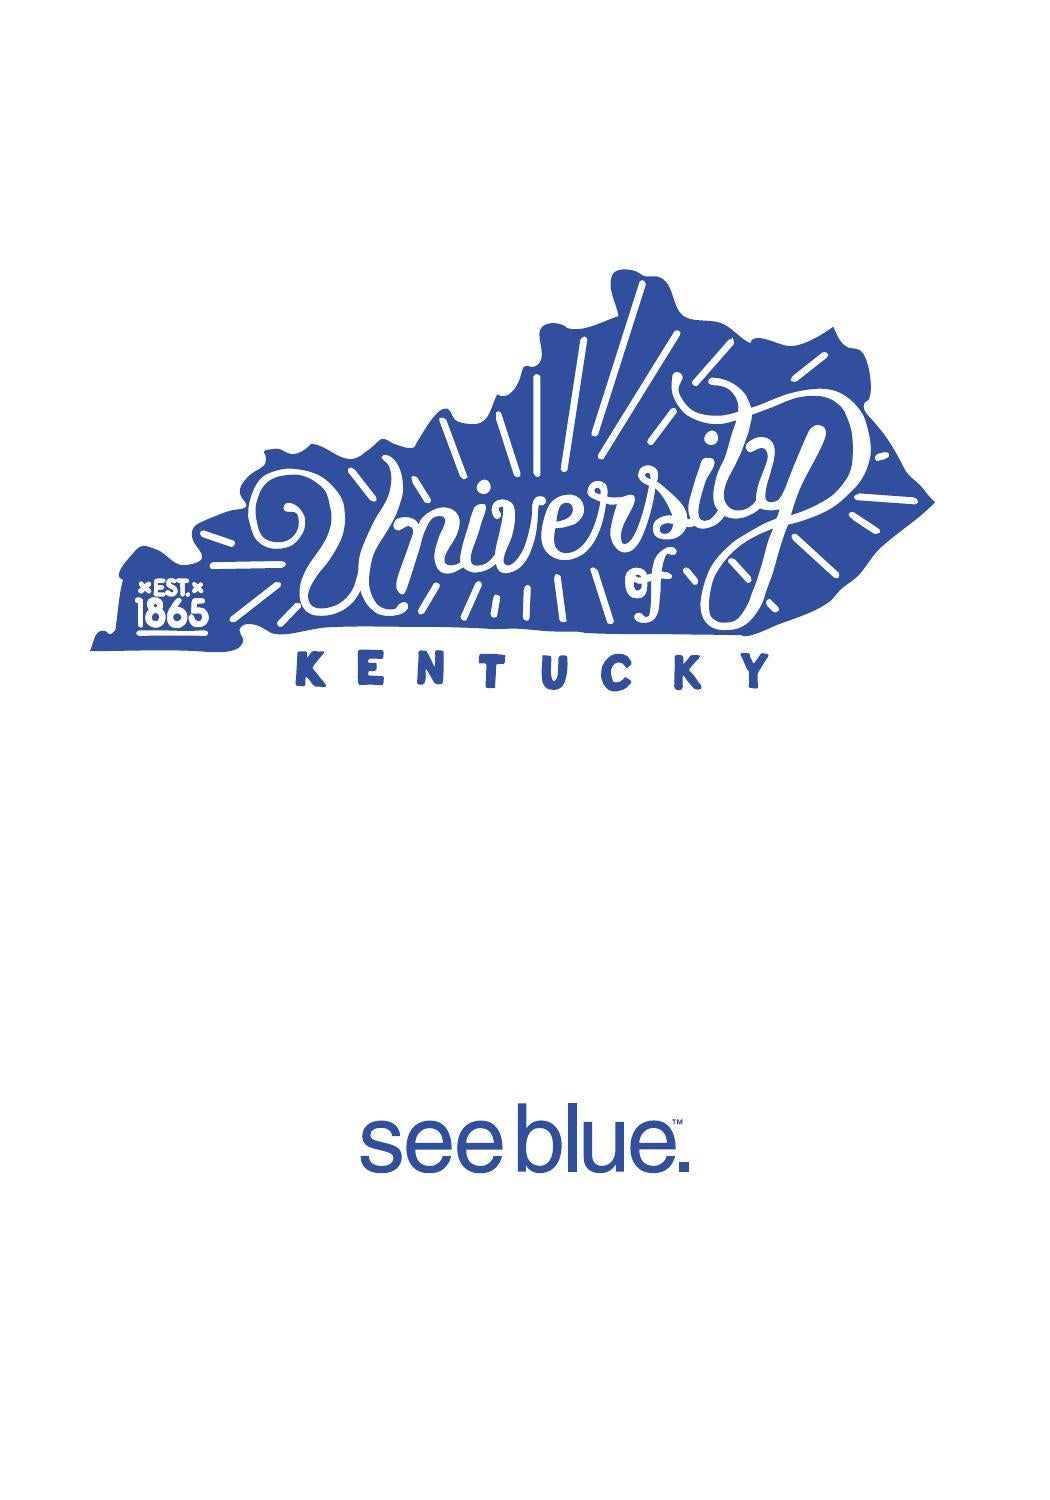 creative writing colleges in kentucky The michael graves college at kean university carries the name creative writing university of kentucky and endorsement of a man who was one of the world's essay wastage food premiere architects and designers.